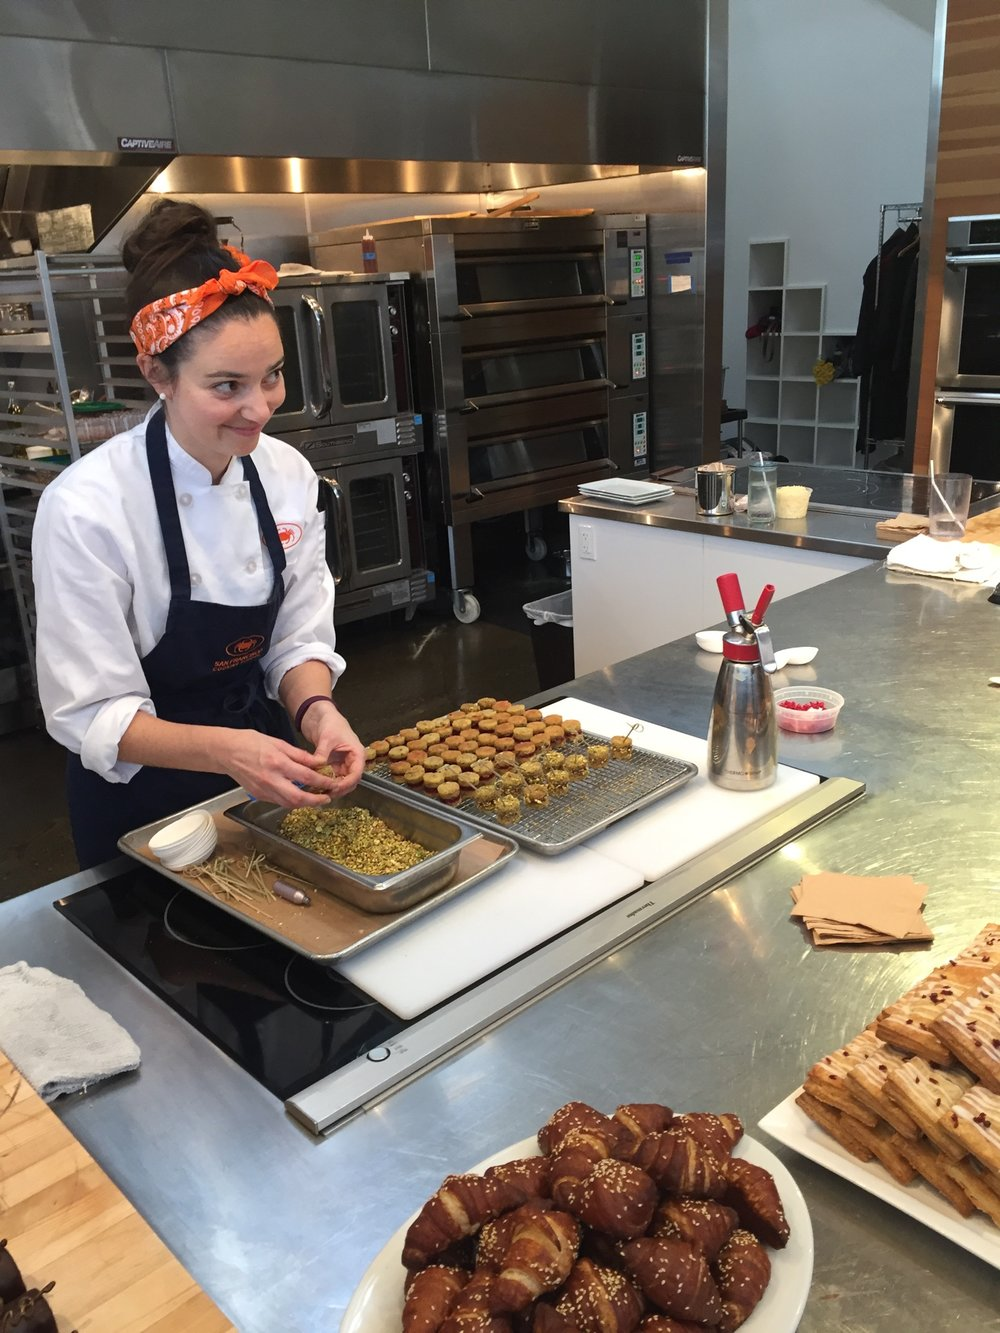 kathleen_san_francisco_cooking_school_bakery_day.jpg